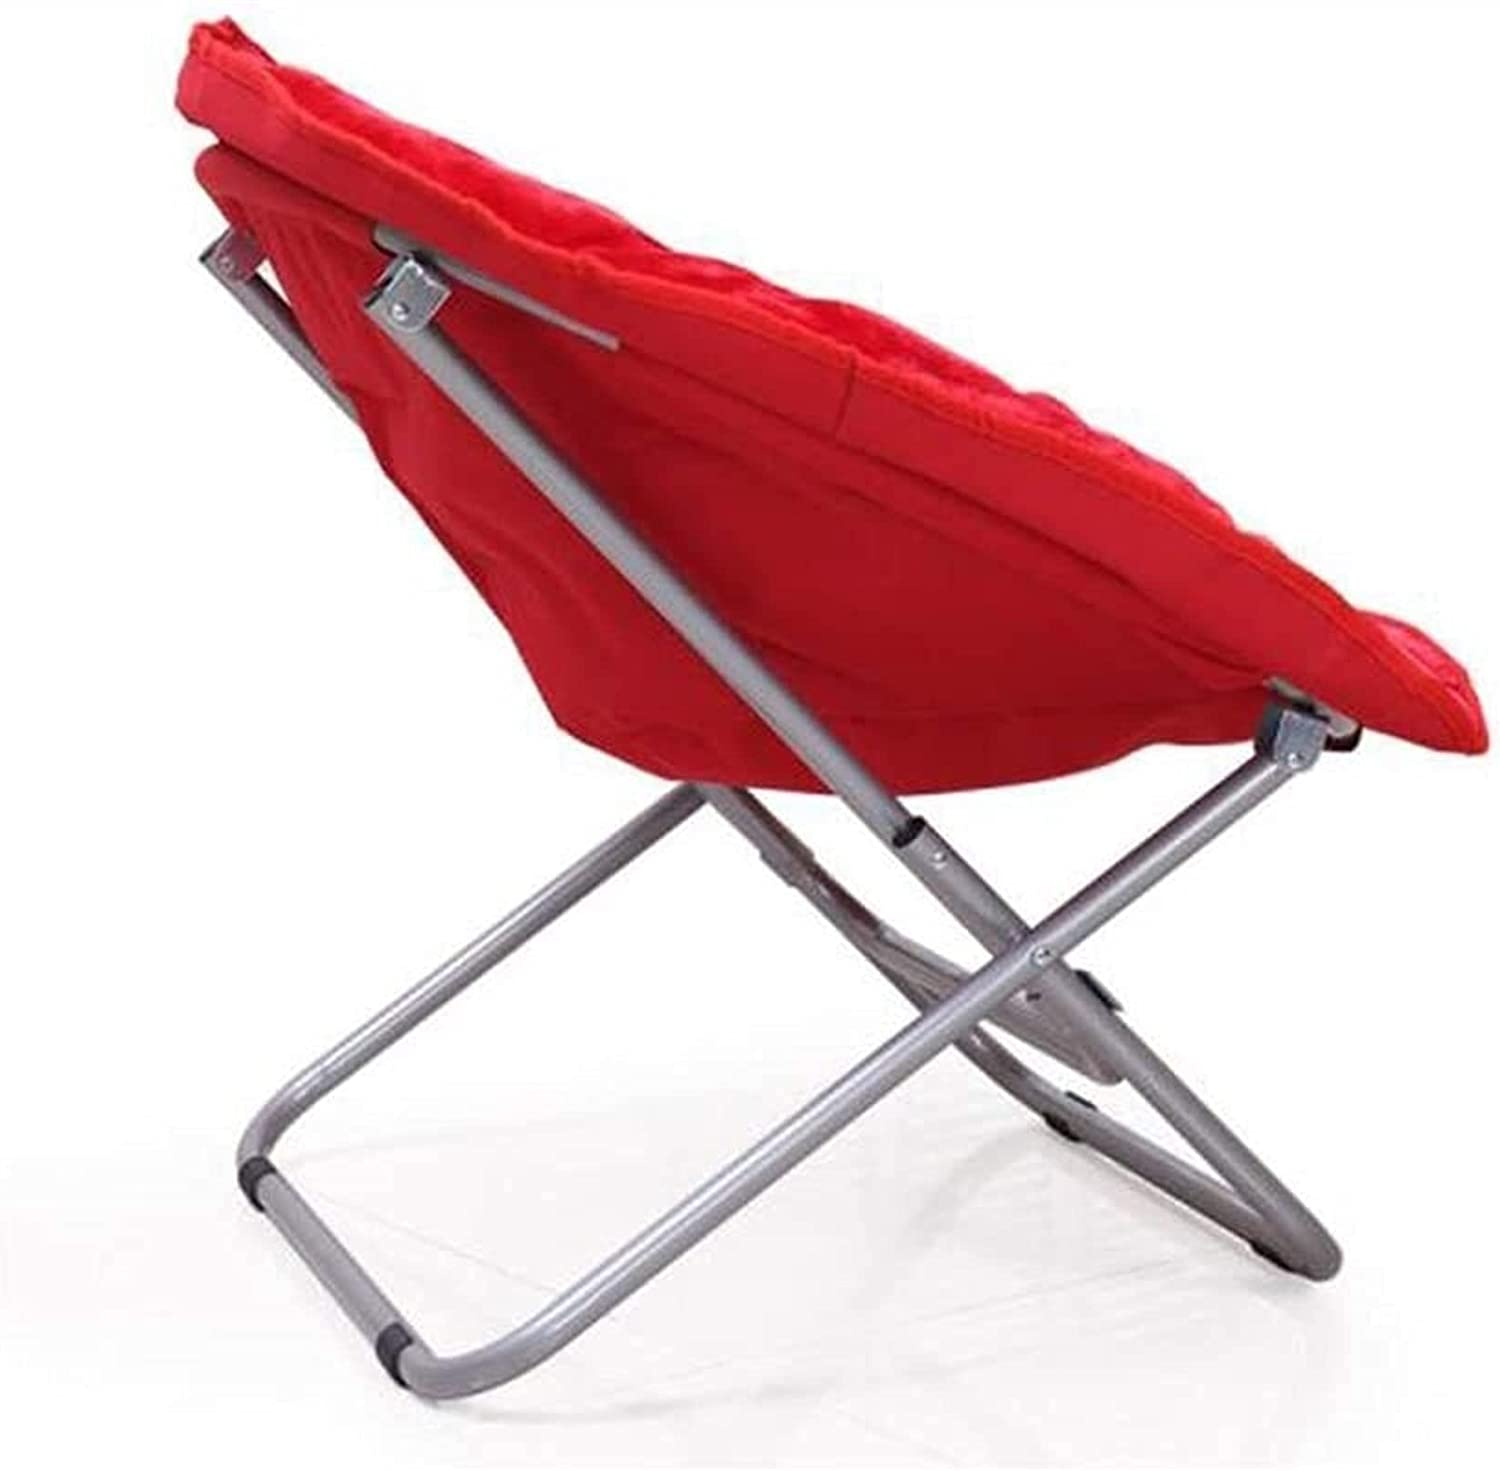 ch-AIR WHLONG Red Leisure Office Limited price sale Fol Chaise sale Reclining Deck Chair